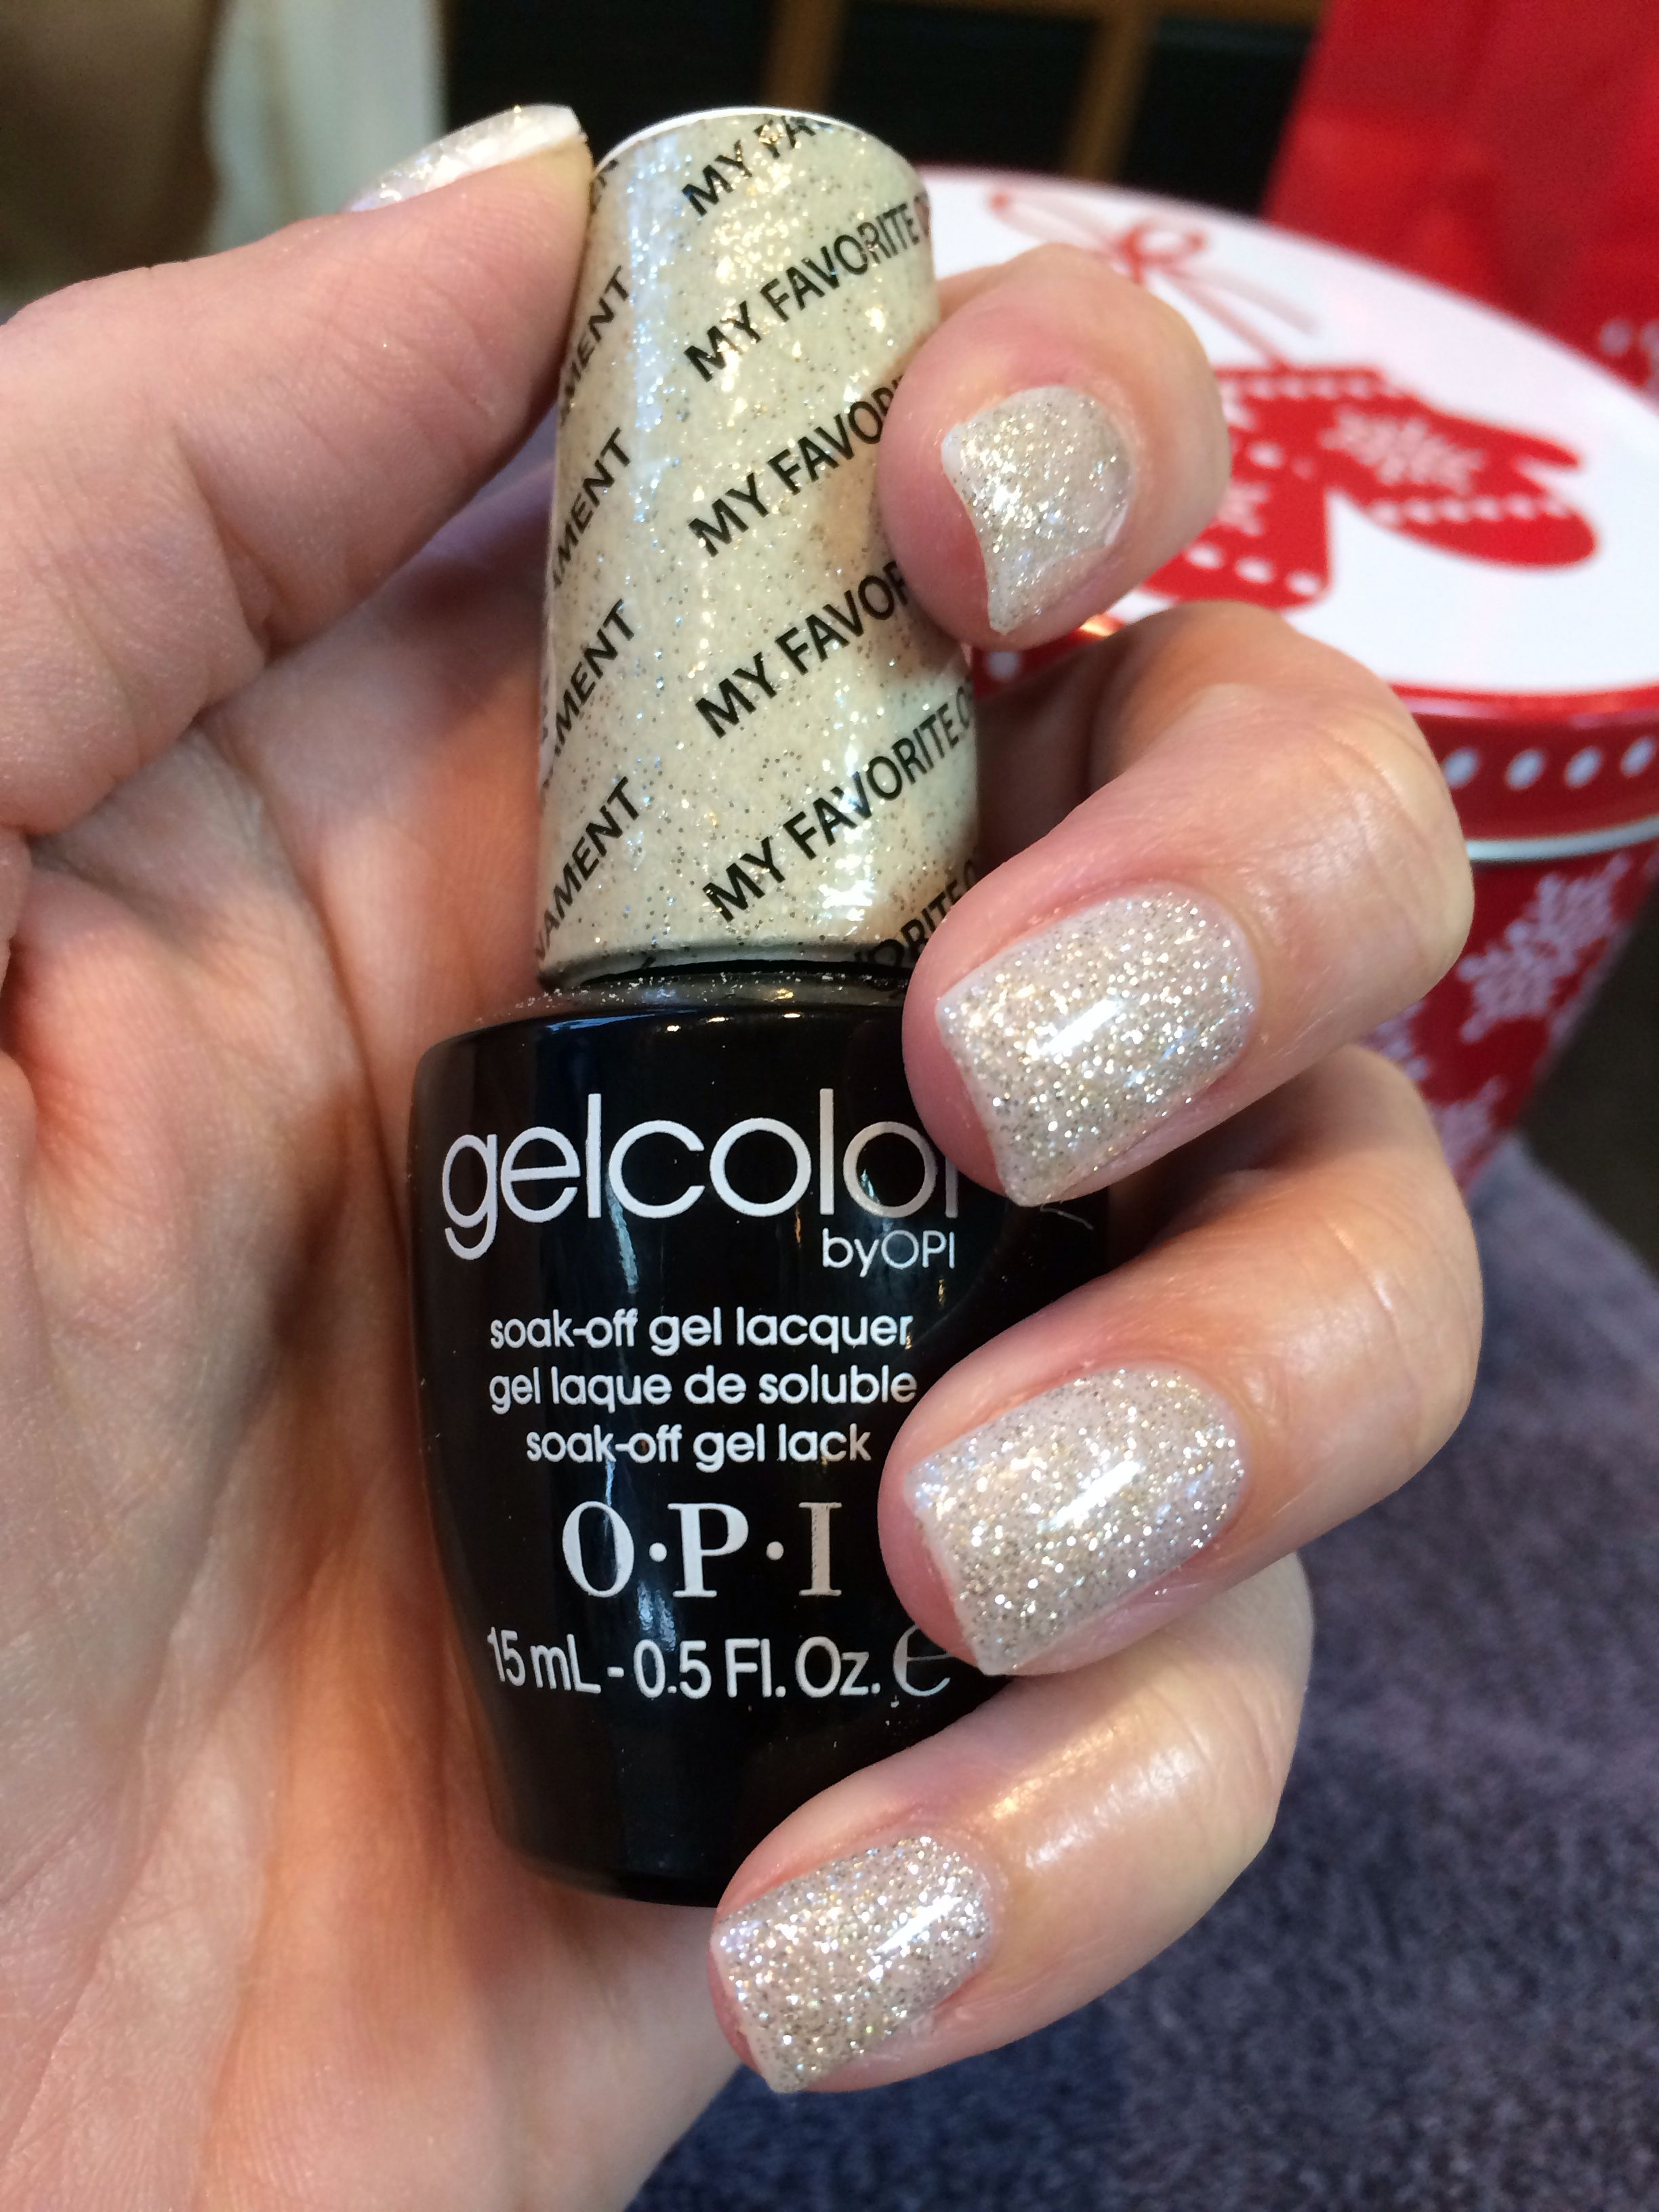 New Gel Nails My Favorite Ornament By Opi Opi Gel Nails Gel